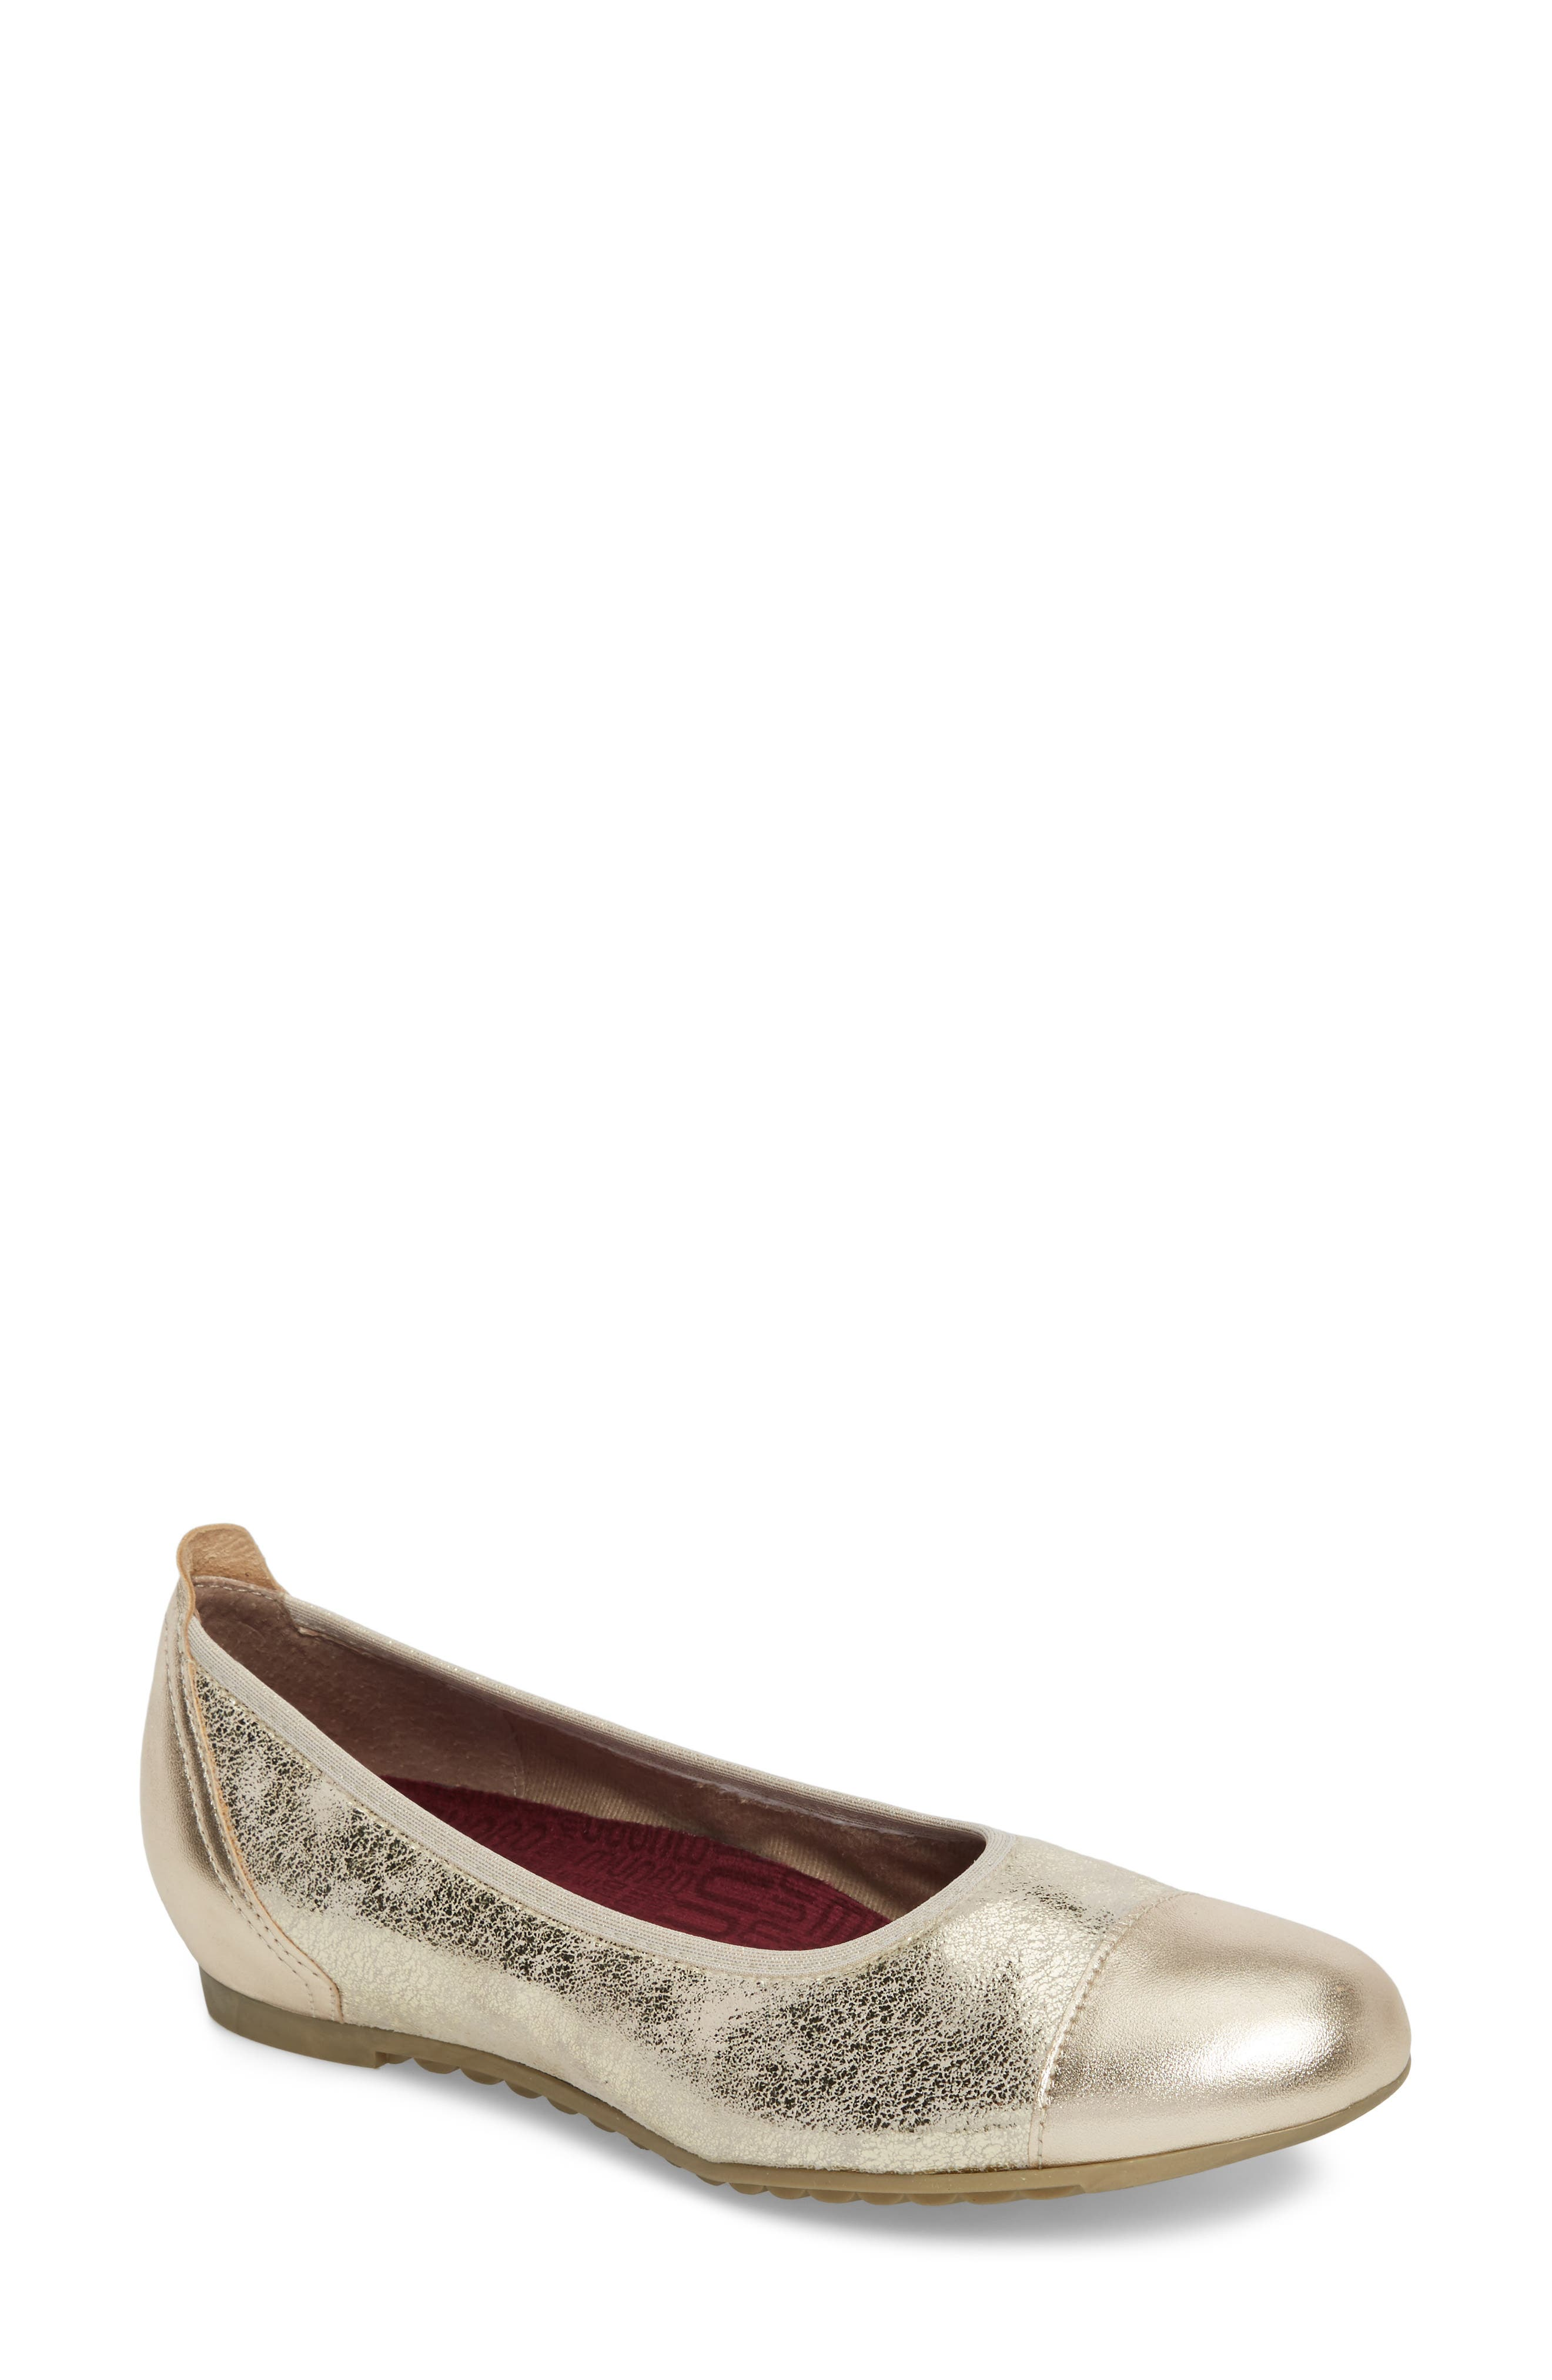 MUNRO, Henlee Cap Toe Flat, Main thumbnail 1, color, PLATINUM SHIMMER LEATHER